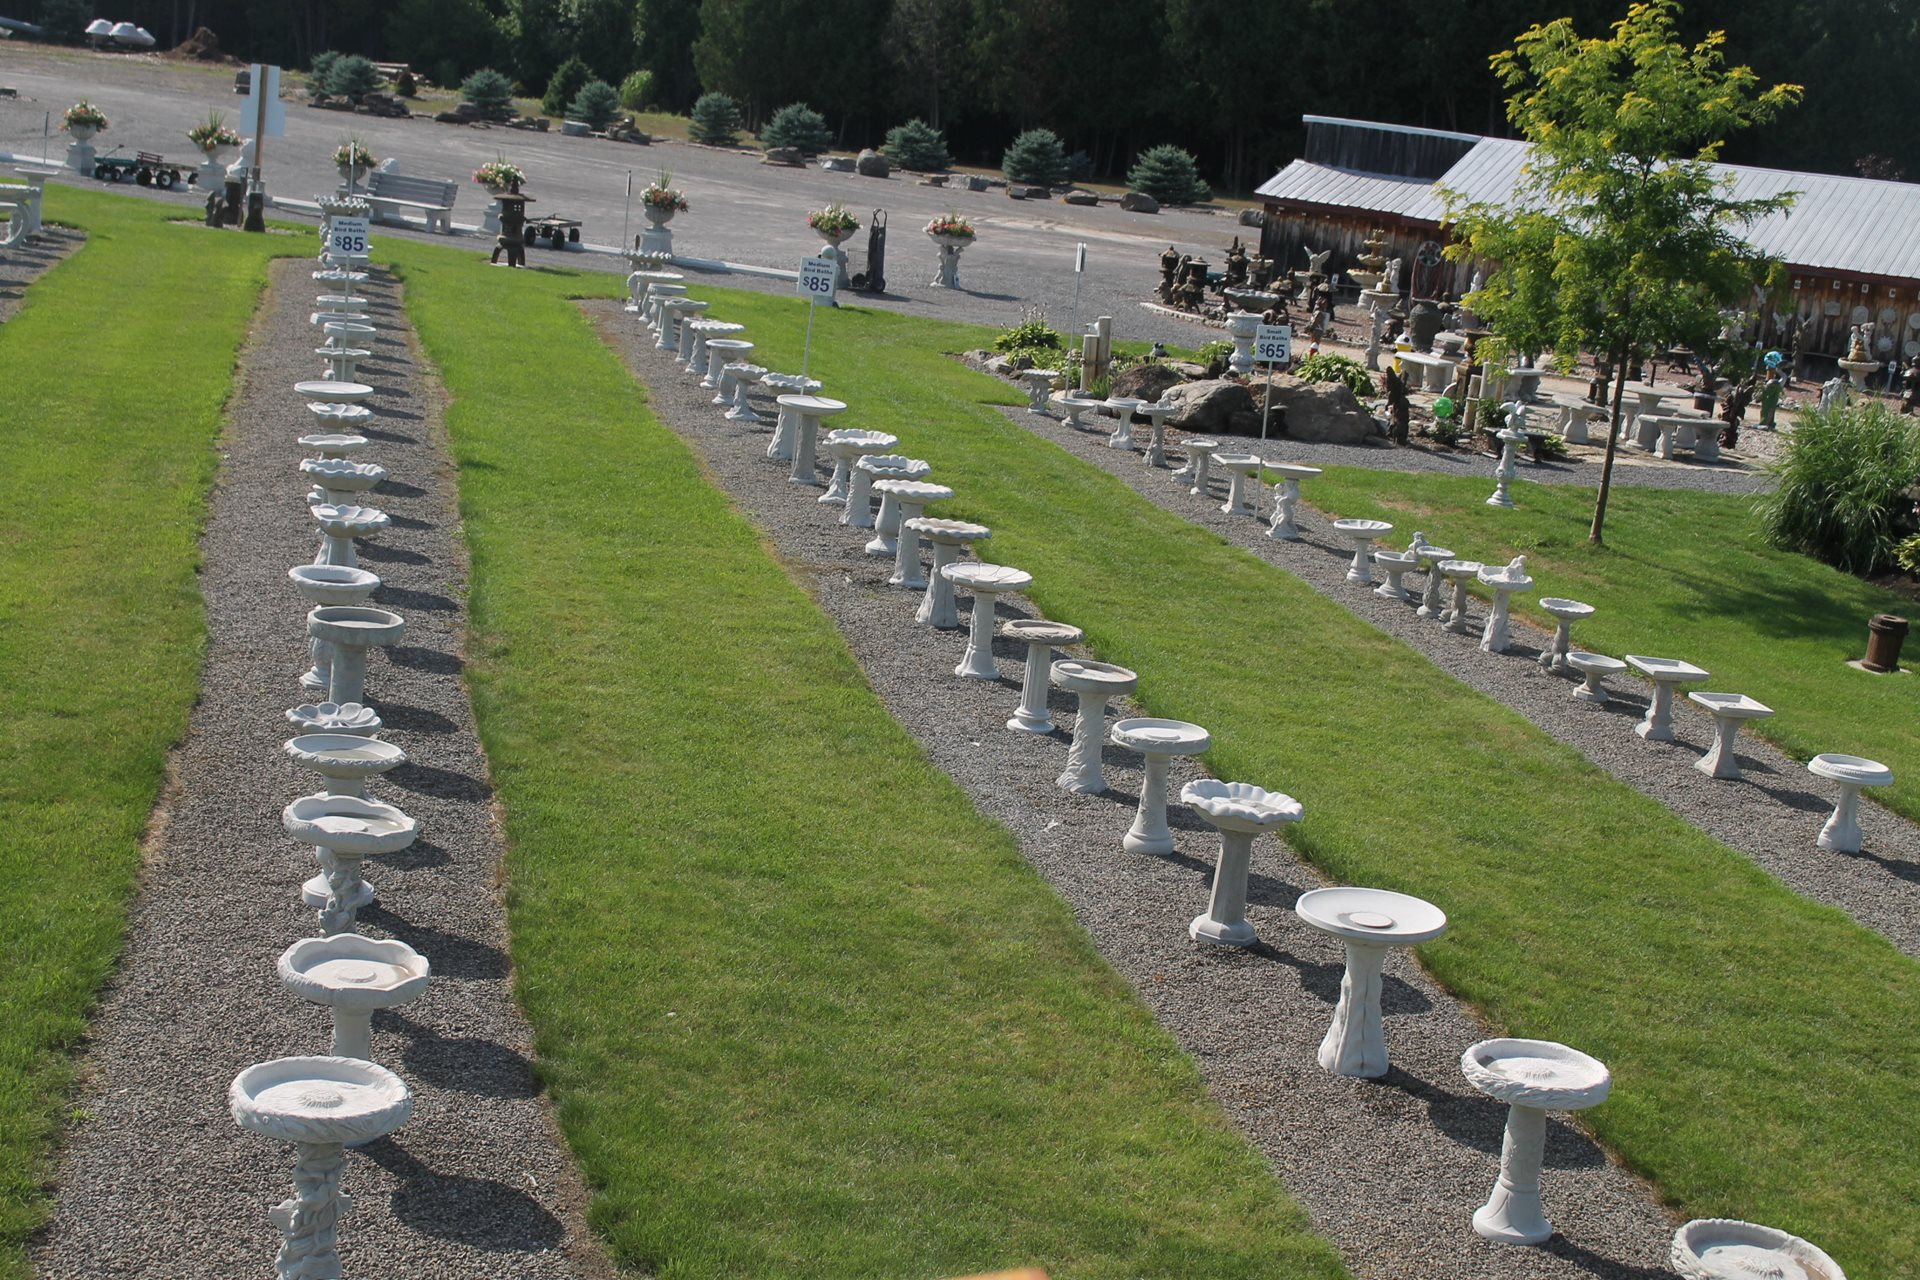 A birds eye view of the small and medium bird baths at KB Backyard Depot